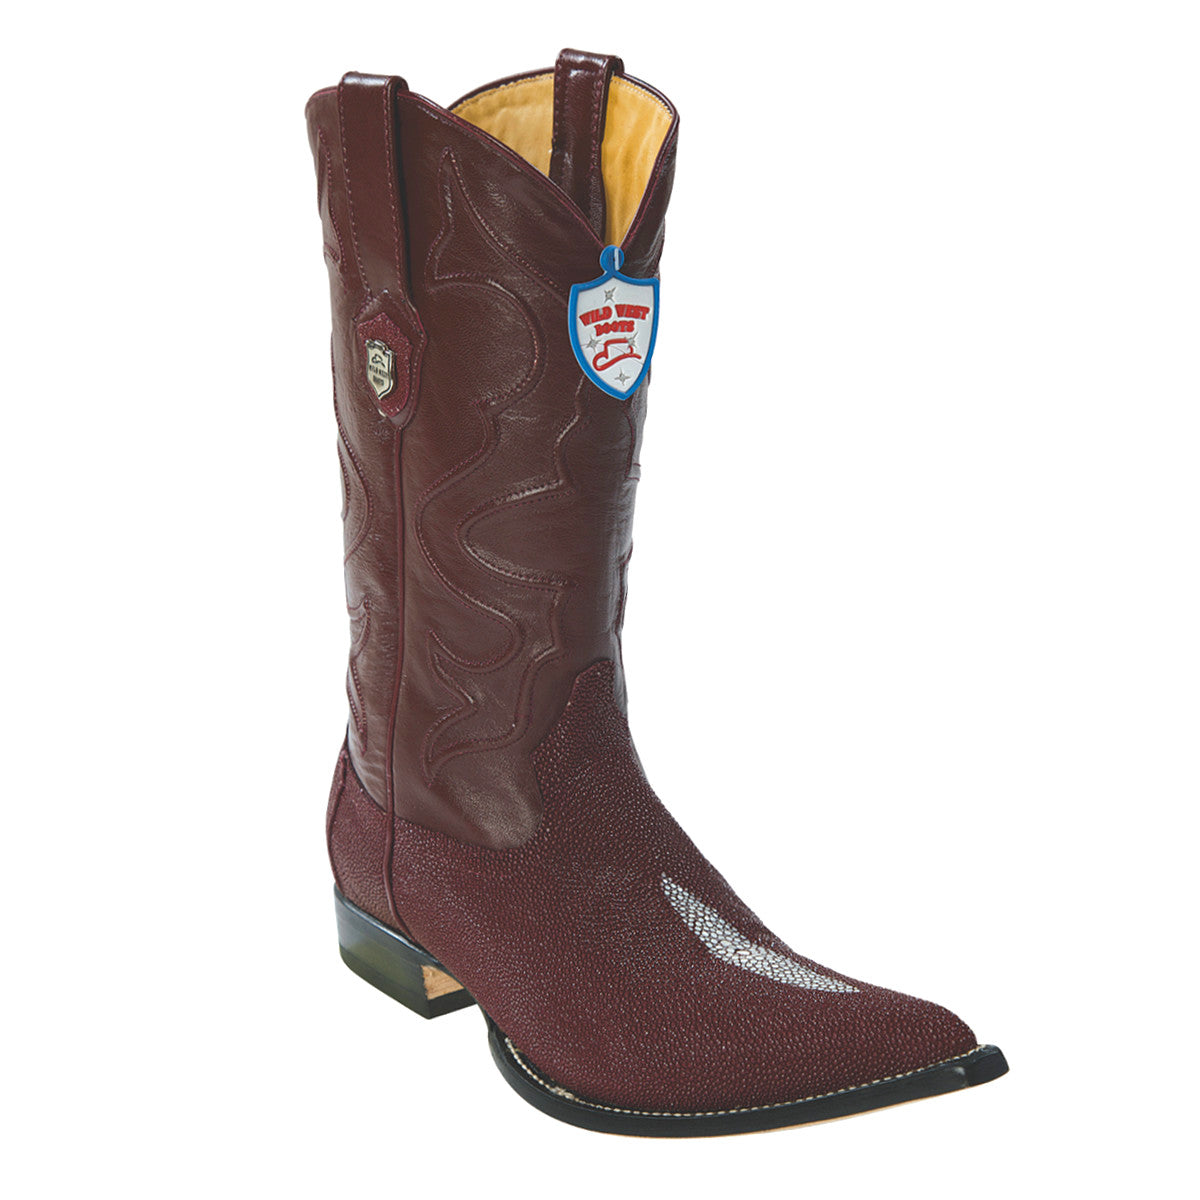 Wild West Boots H95 3x Toe Stingray Single Stone - Burgundy